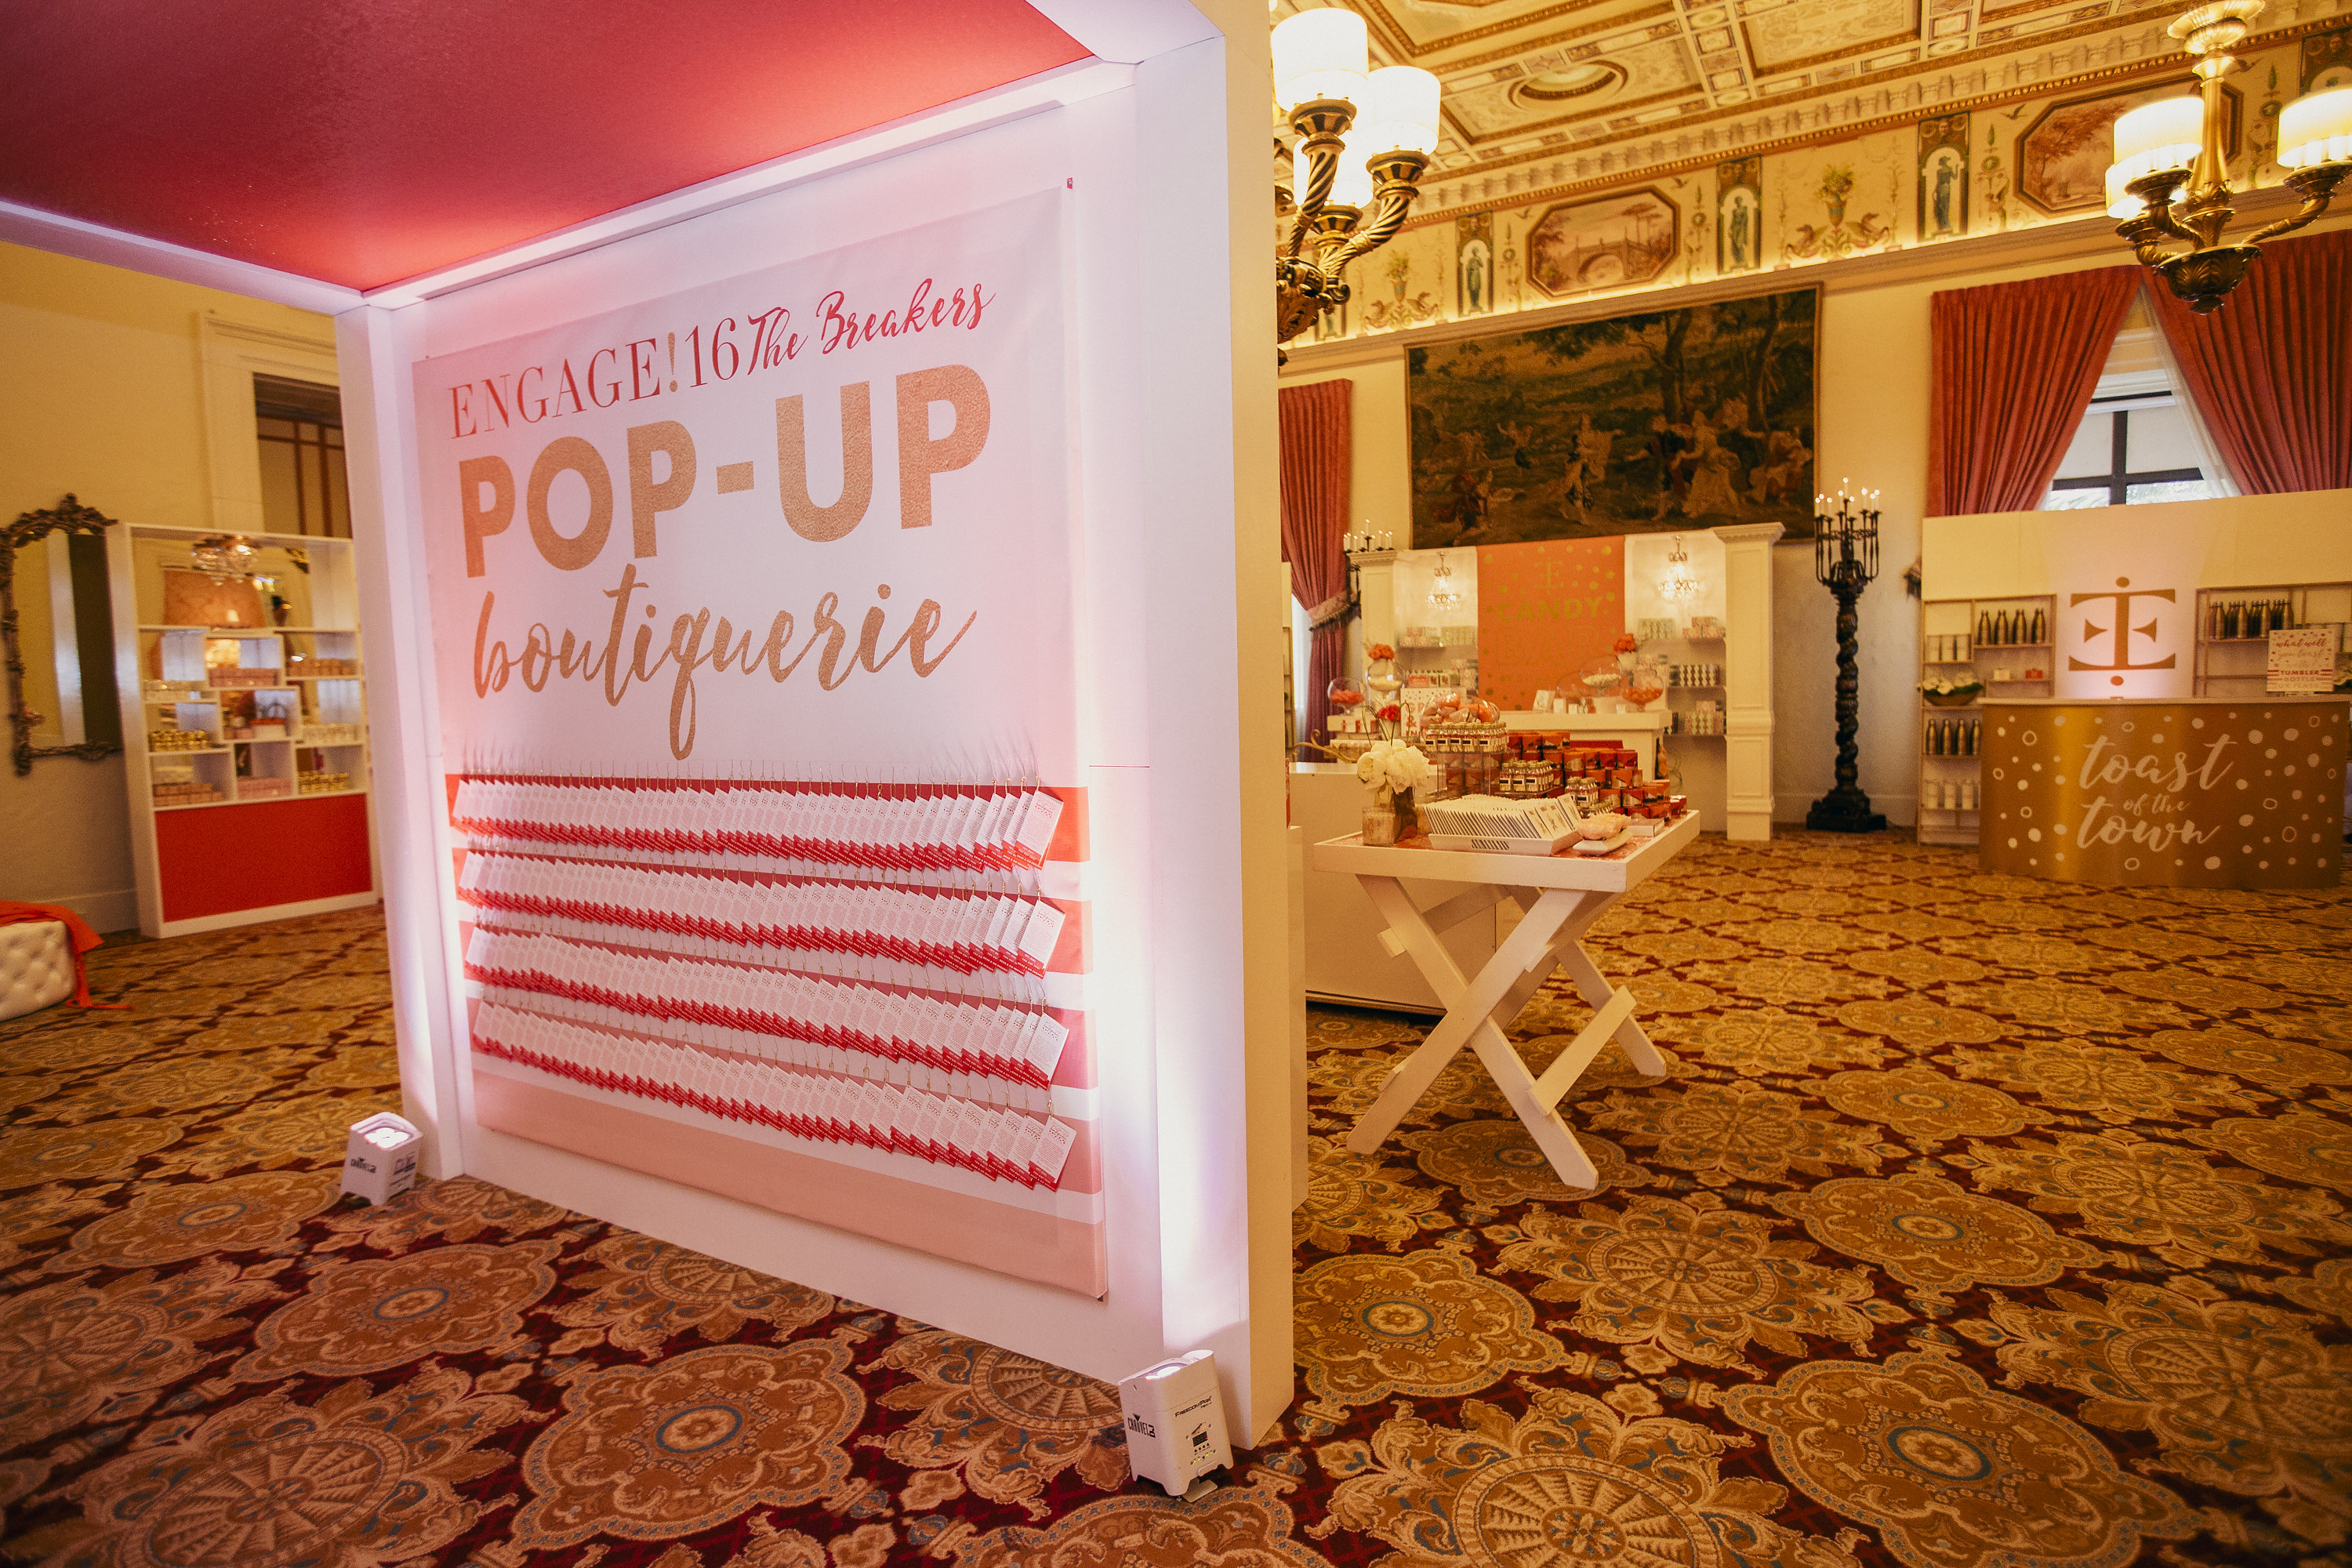 Engage!16 The Breakers: Pop Up Gift Boutiquerie - Engage Summits